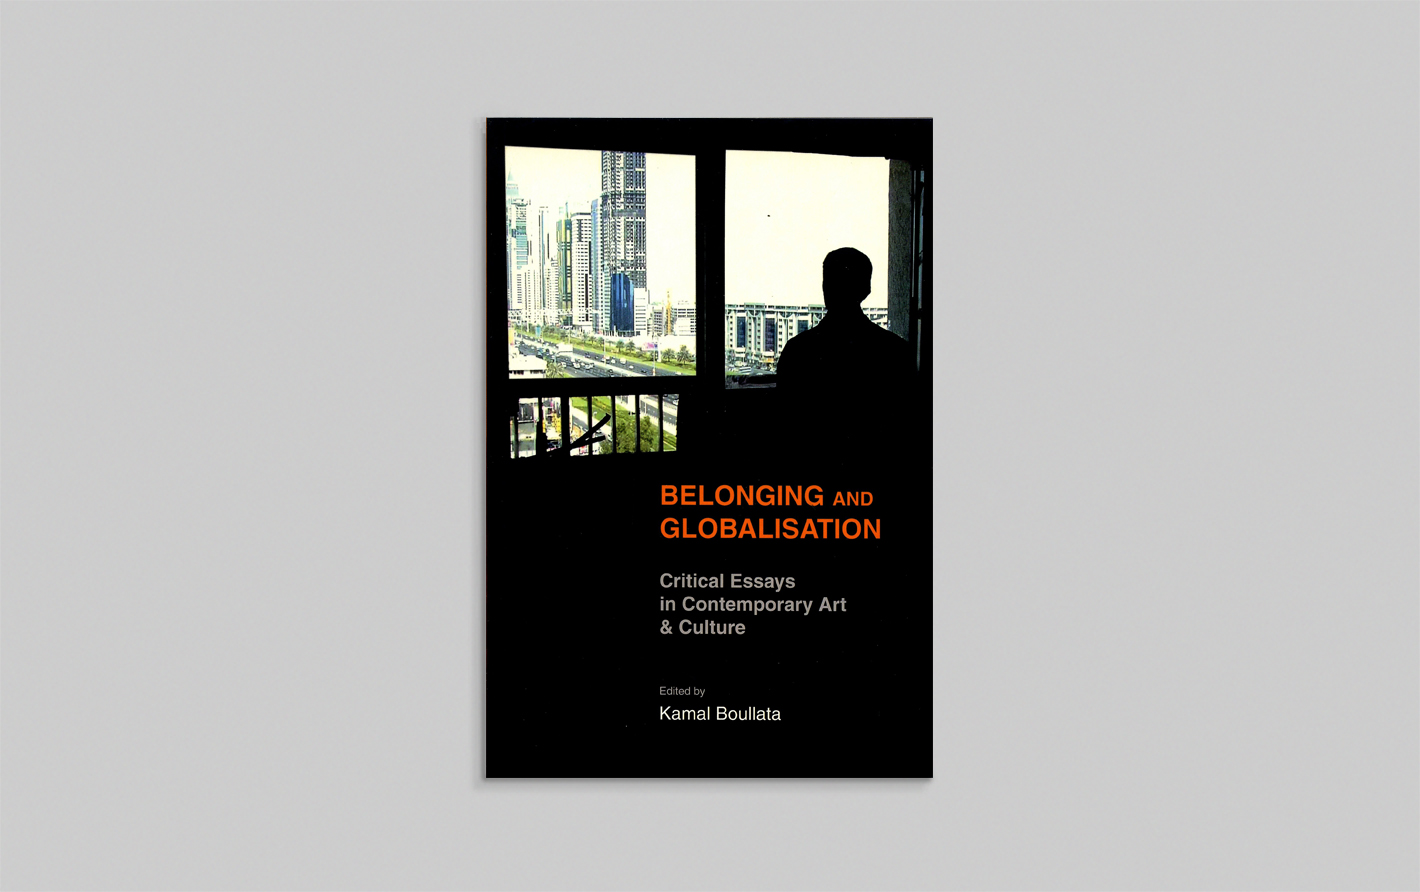 publications sharjah art foundation kamal boullata belonging and globalisation